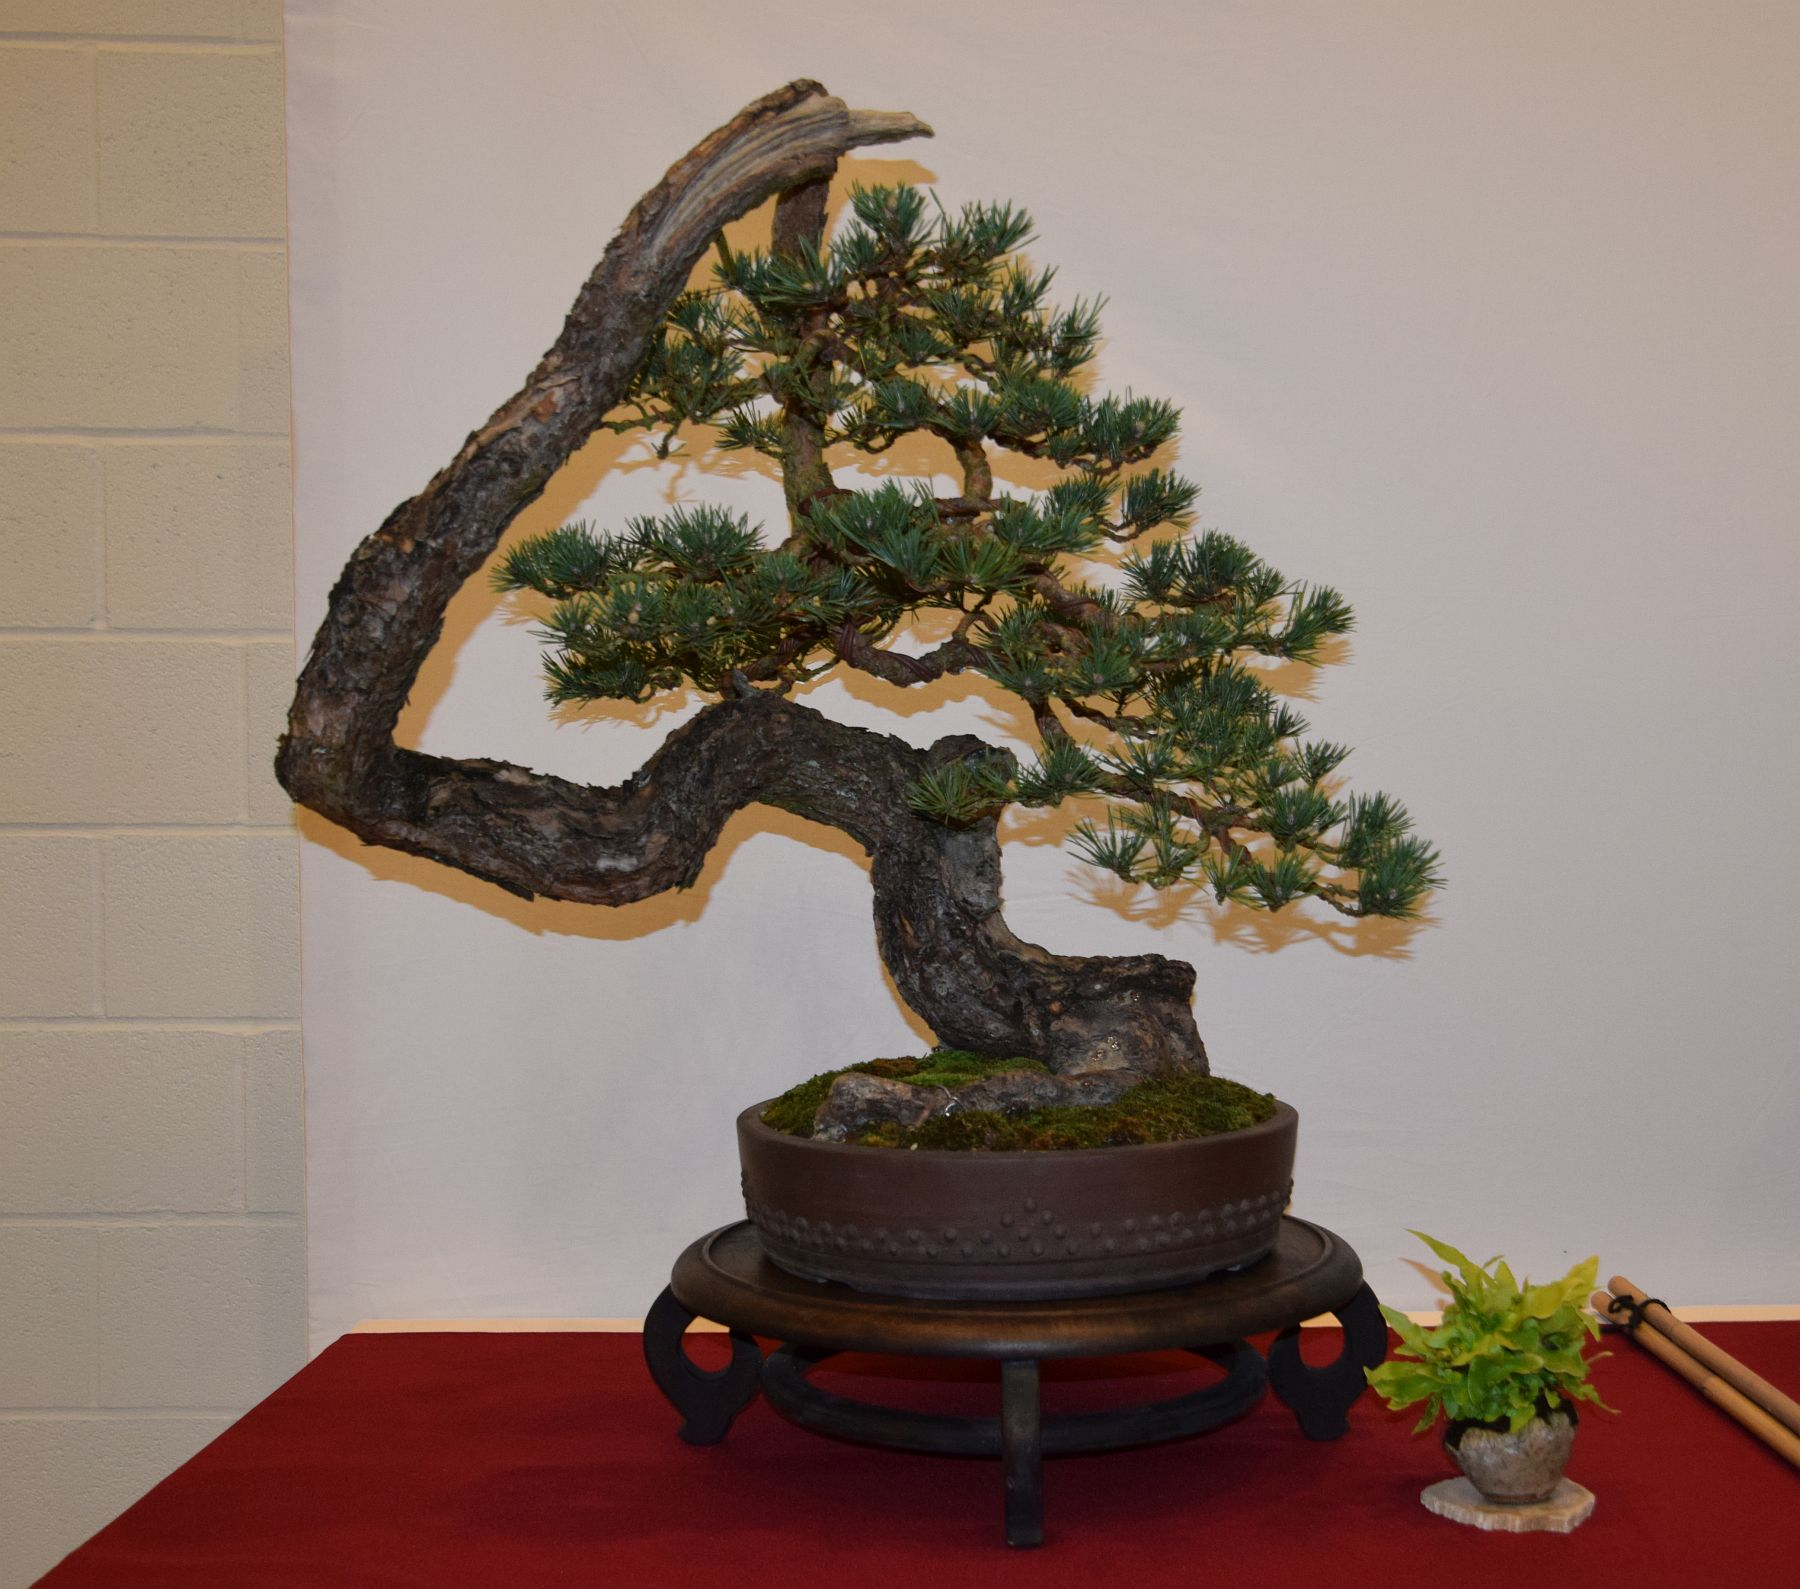 euk-bonsai-ten-2016-club-bonsai-042